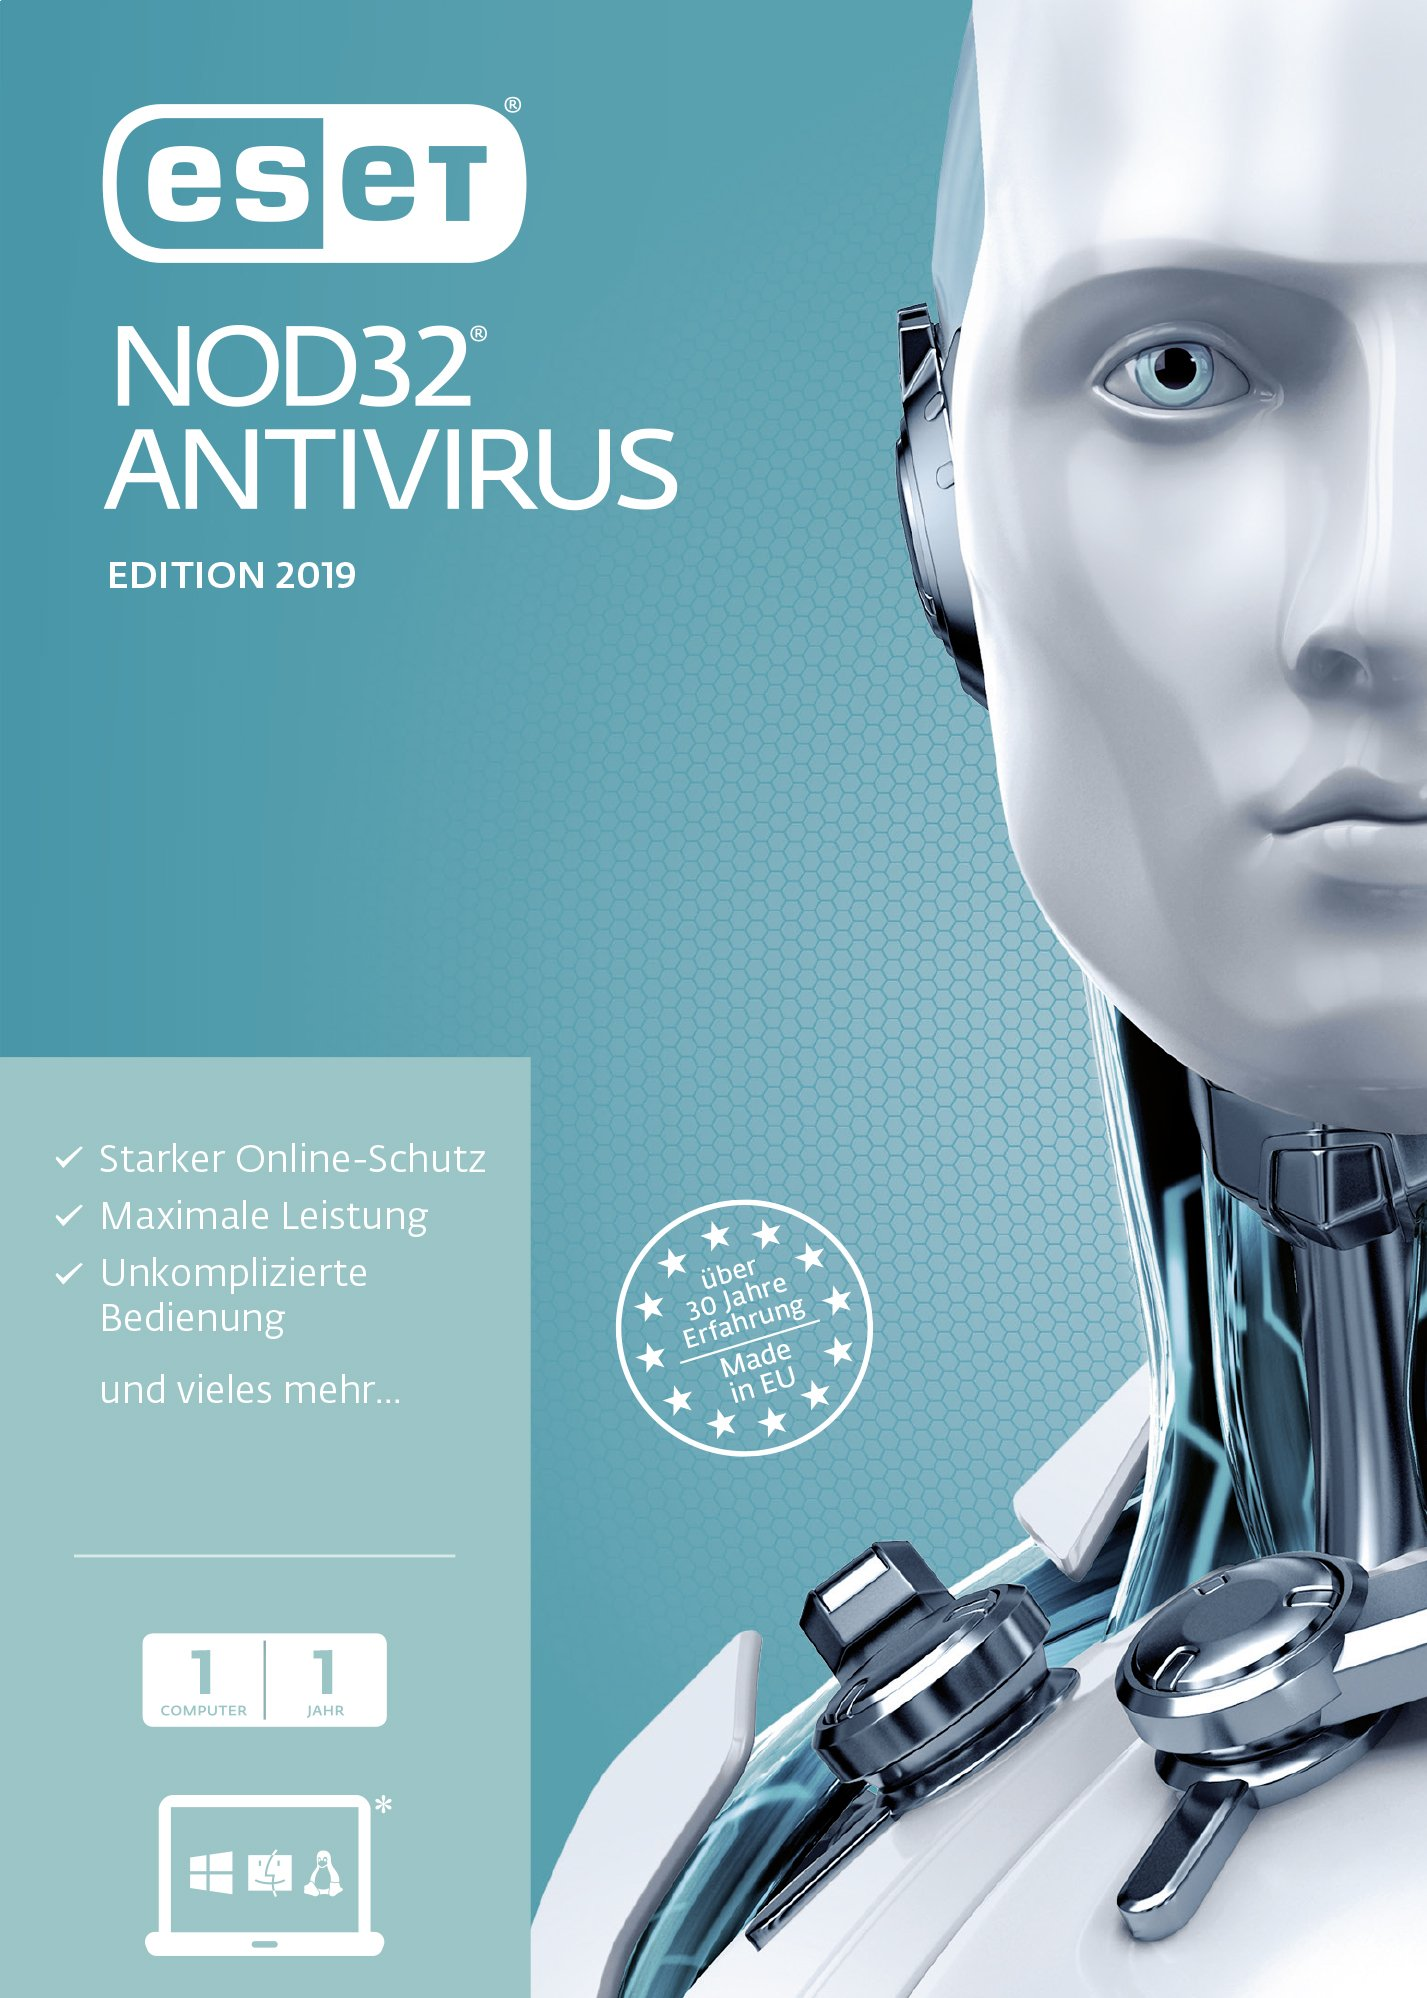 Eset Nod32 Antivirus 2019 Edition 1 User Ffp Für Windows Vista 7 8 10 Mac Linux 4022863005493 Books